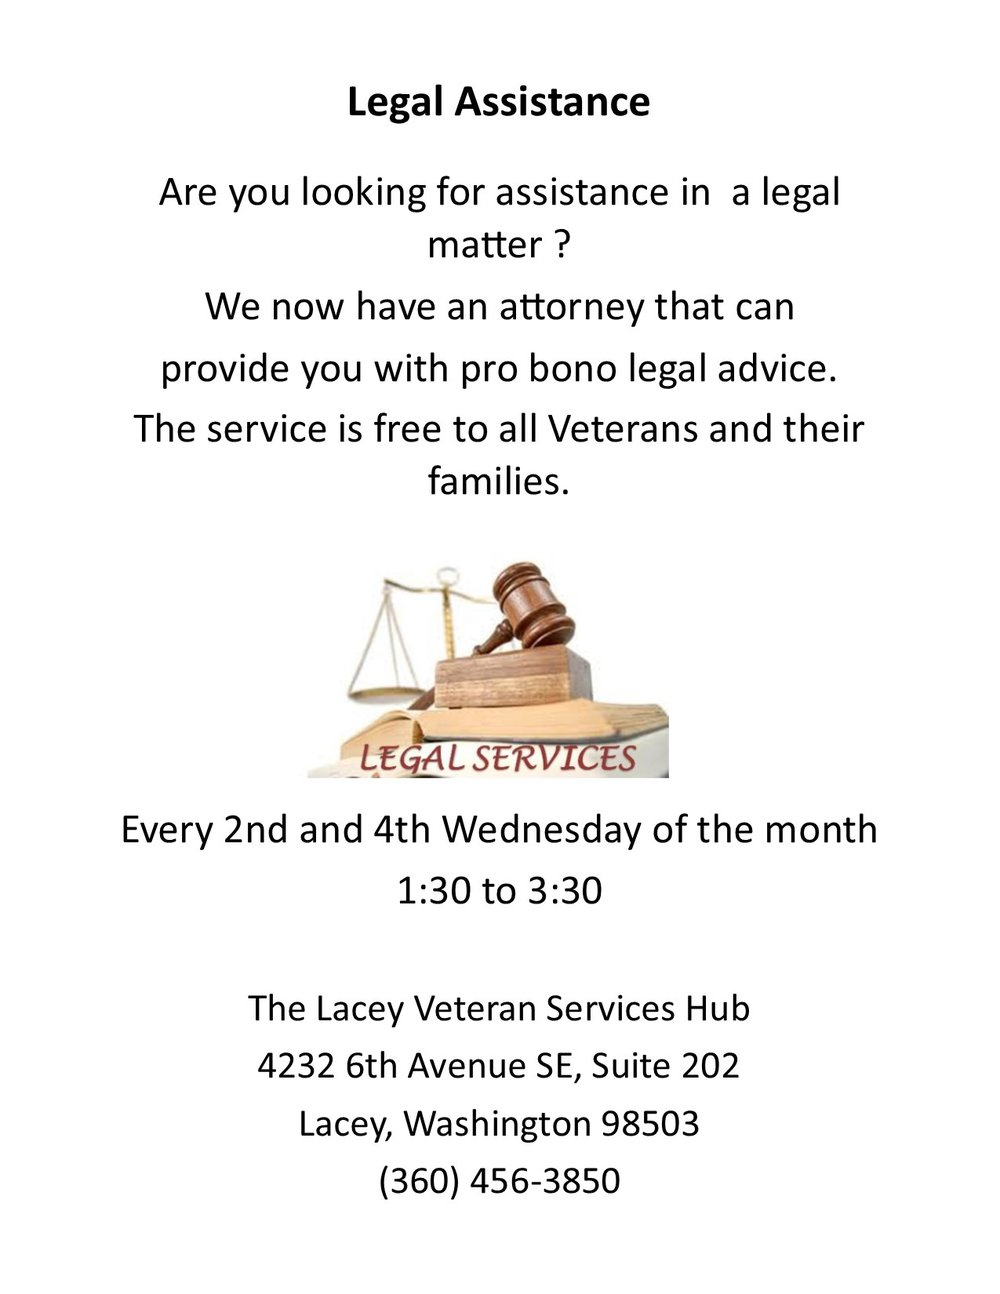 Legal Assistance Flyer.jpg